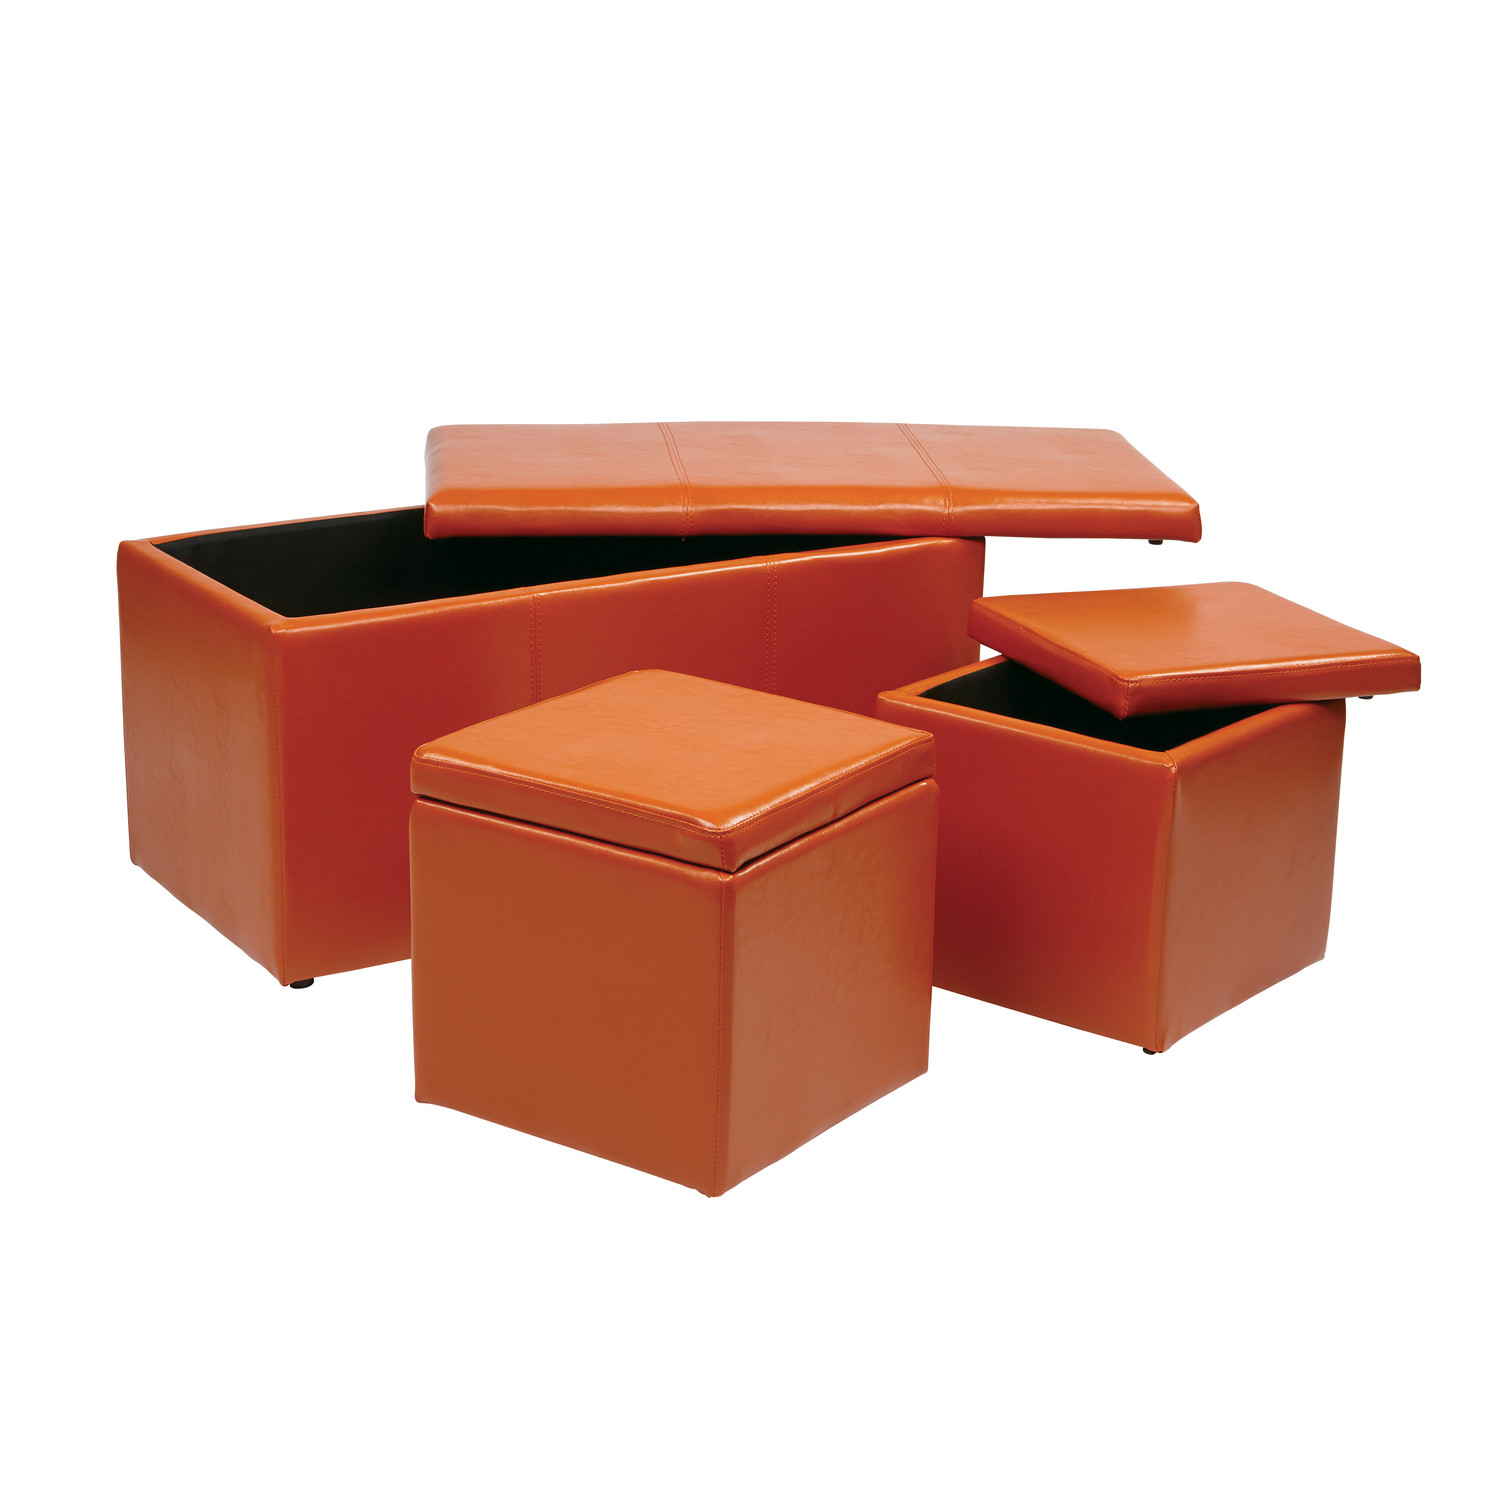 Orange Storage Ottoman Stylish And Functional Storage